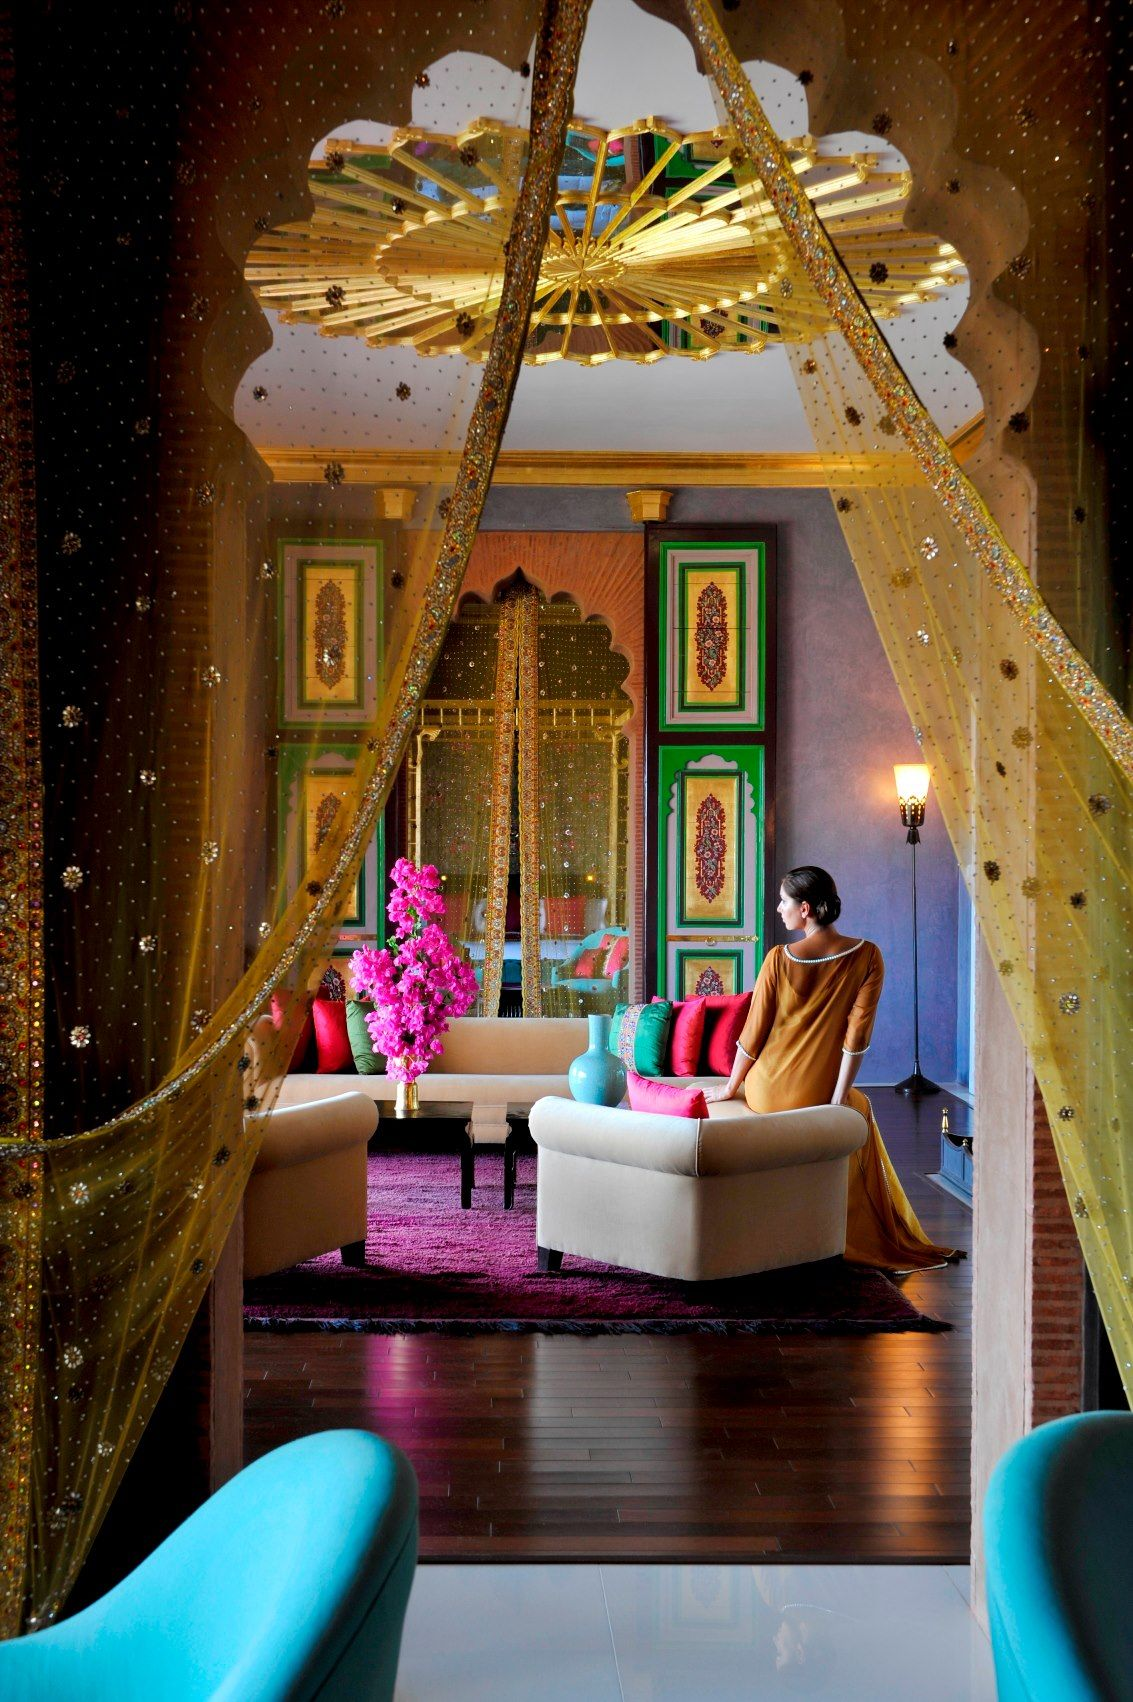 taj palace hotel marrakech morocco riads and moroccan